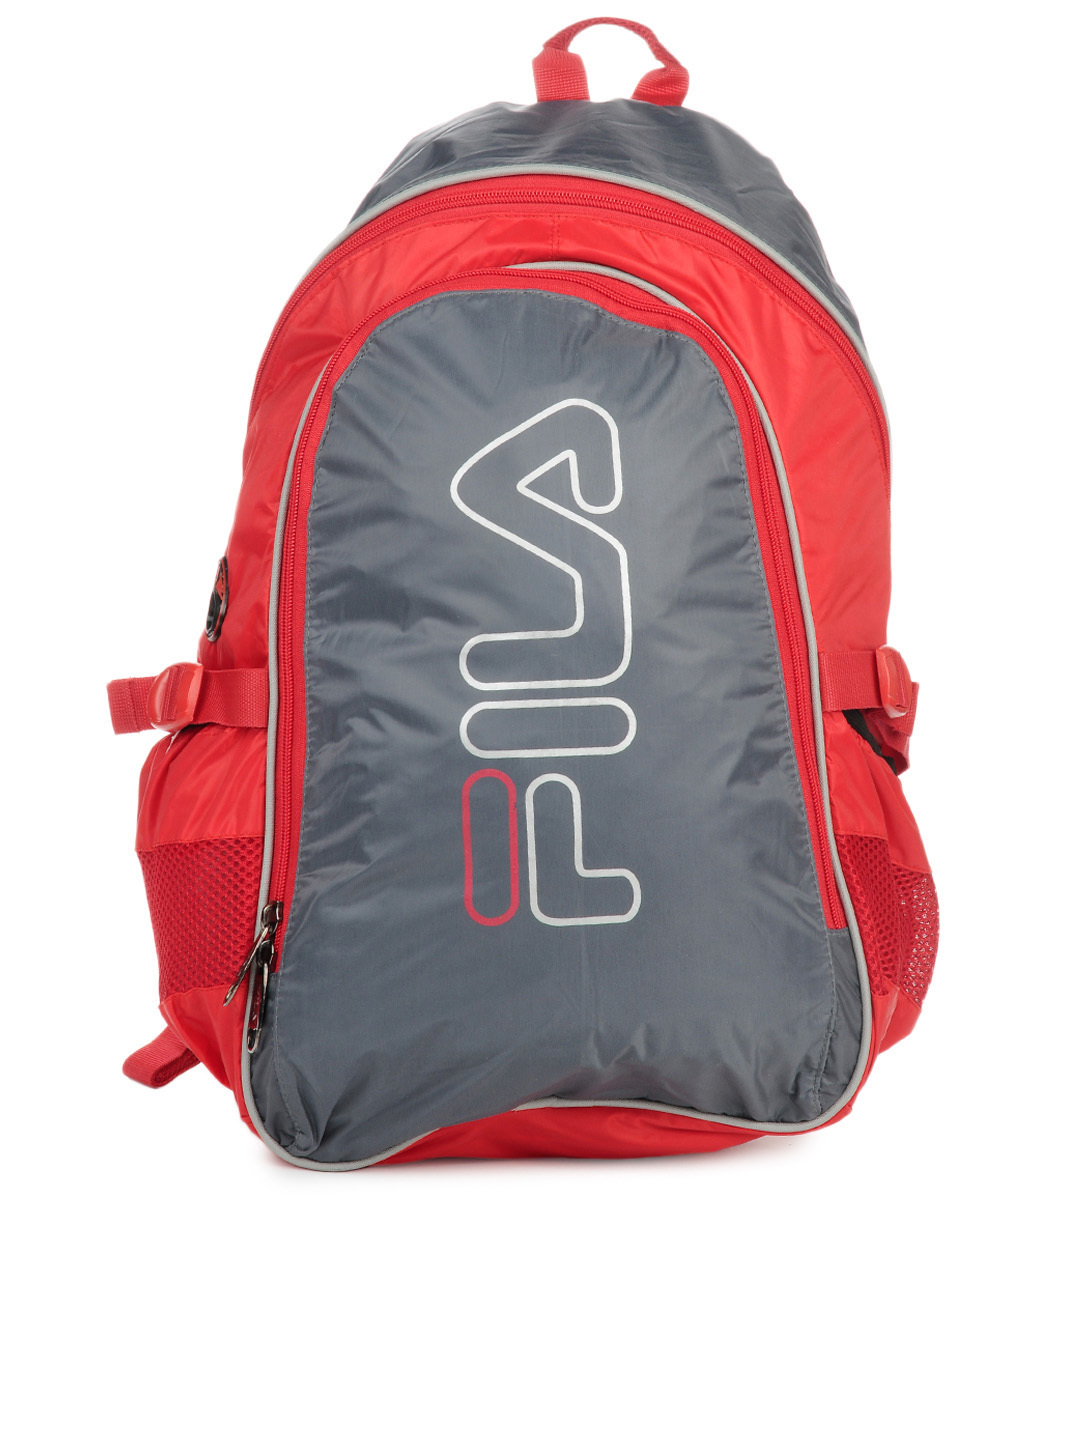 Fila Unisex Grey Backpack